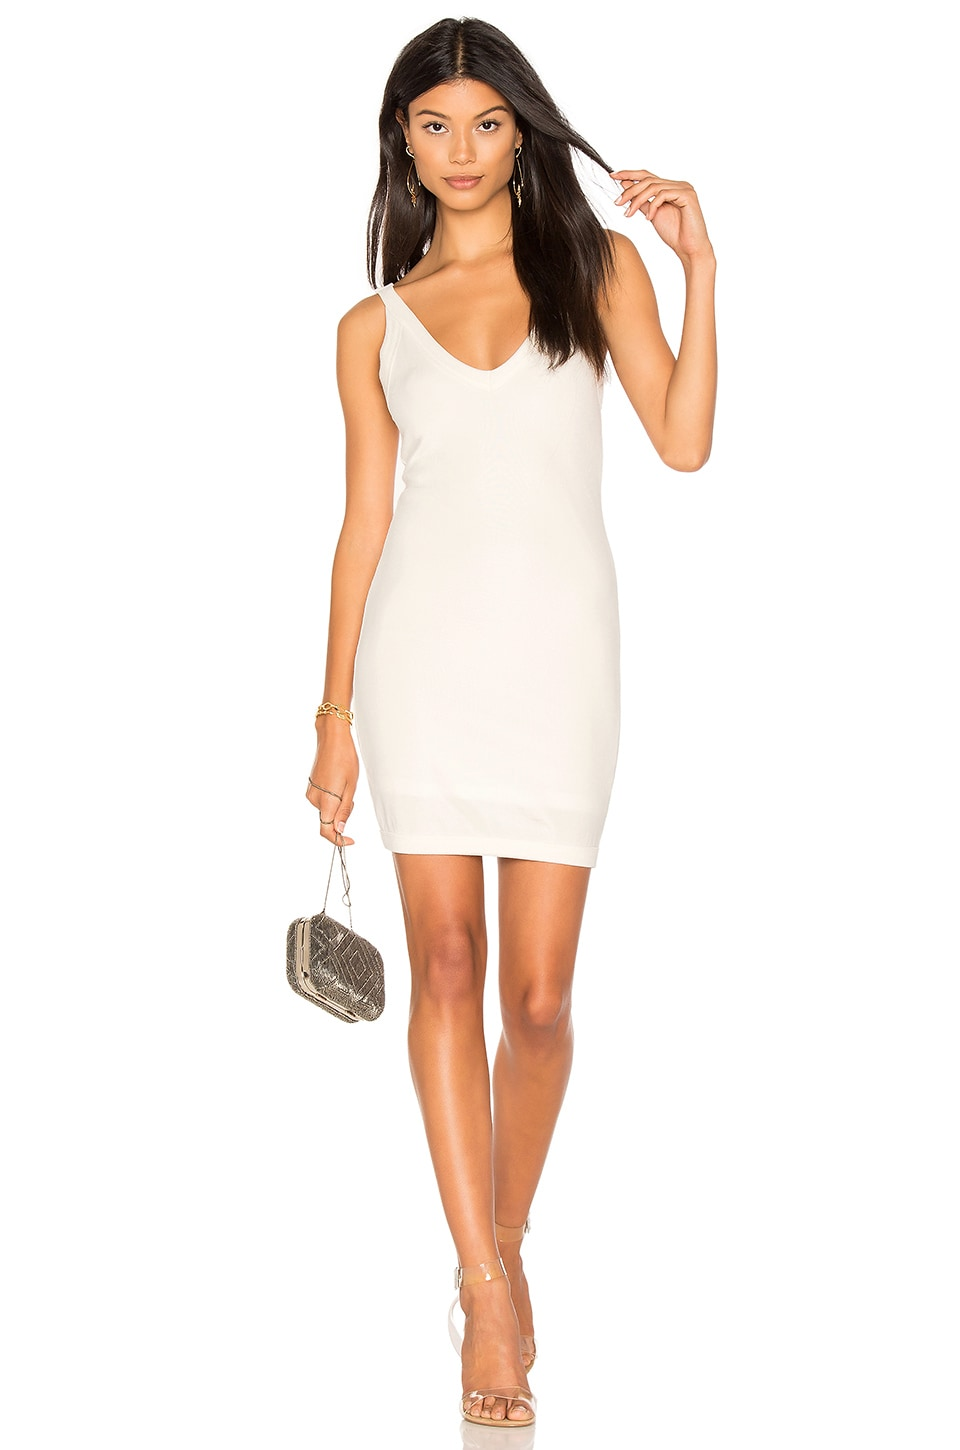 h:ours Massie Dress in Ivory